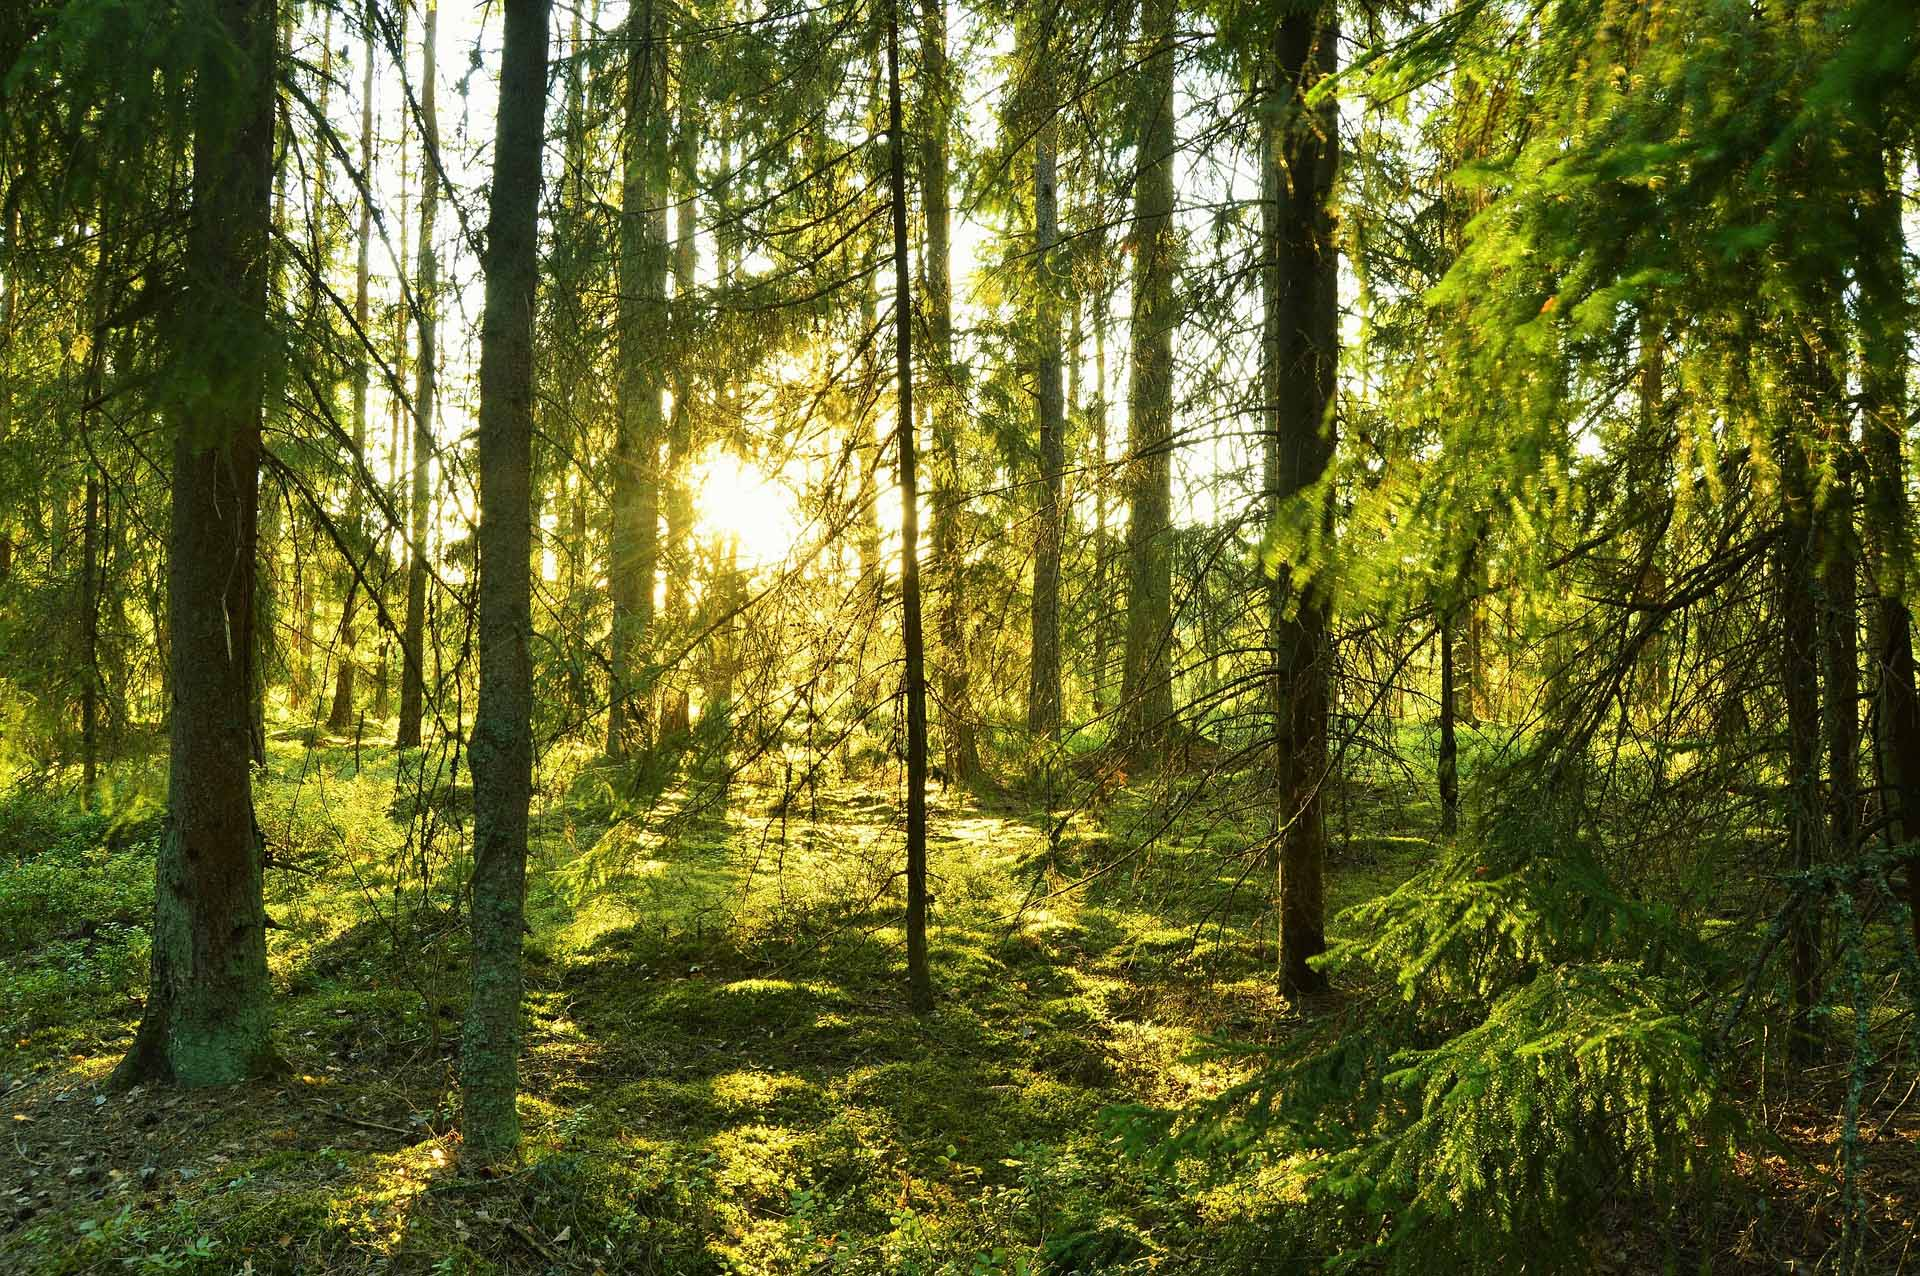 A forest glade in Sweden with the sun peeking out behind pine trees.